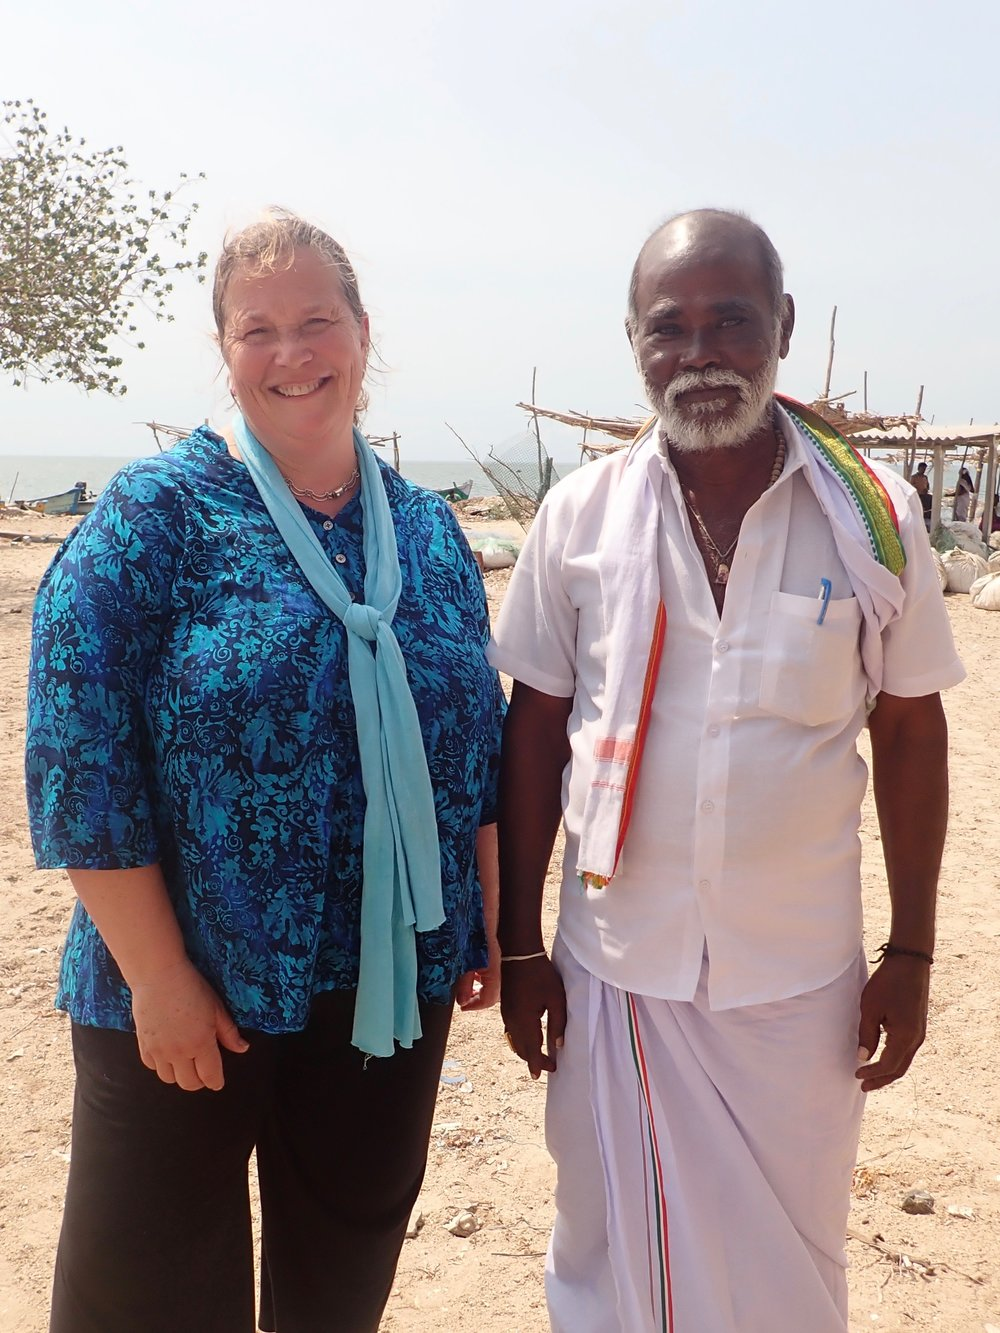 Saveri Anandam, conservation leader, at Vellapatti, Tuticorin area. Photo by Amanda Vincent/Project Seahorse.